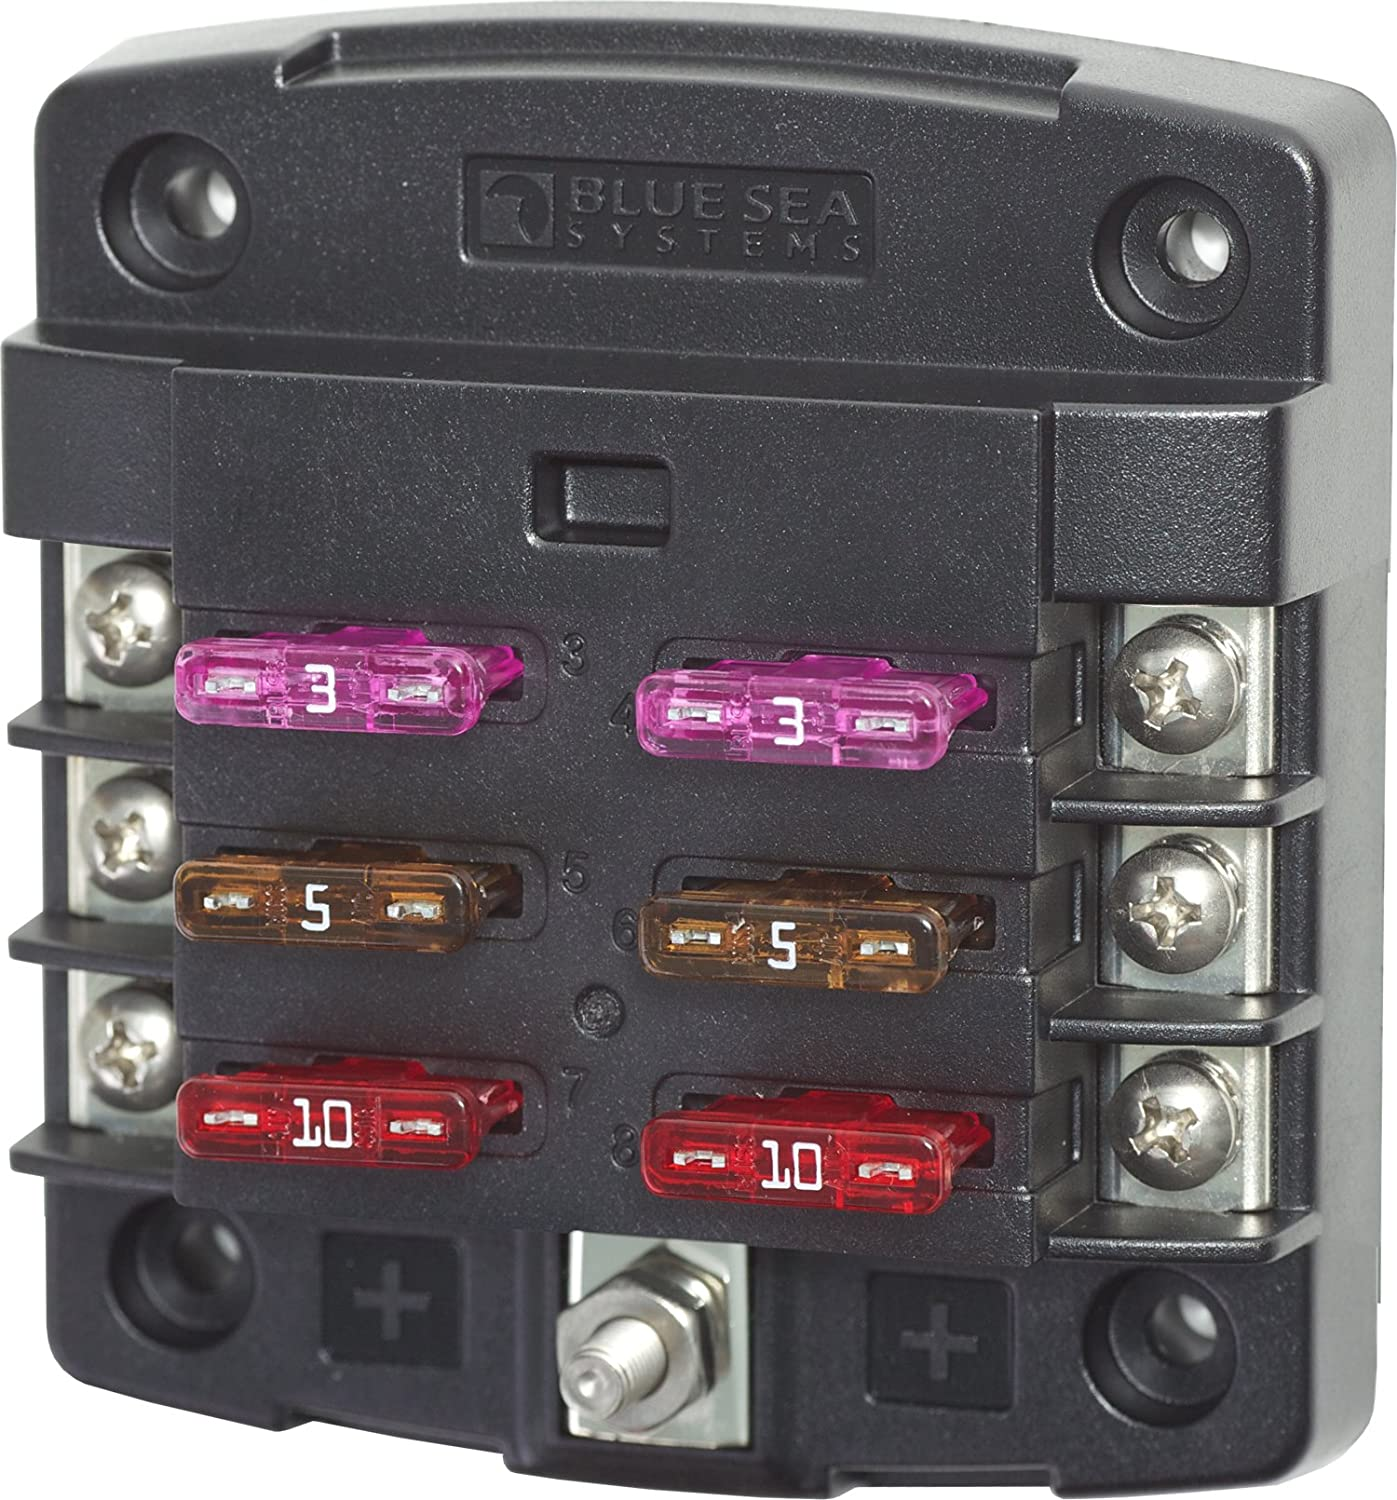 Amazon.com : Blue Sea Systems ST Blade 12-Circuit Fuse Block : Marine Fuse  Box : Sports & Outdoors